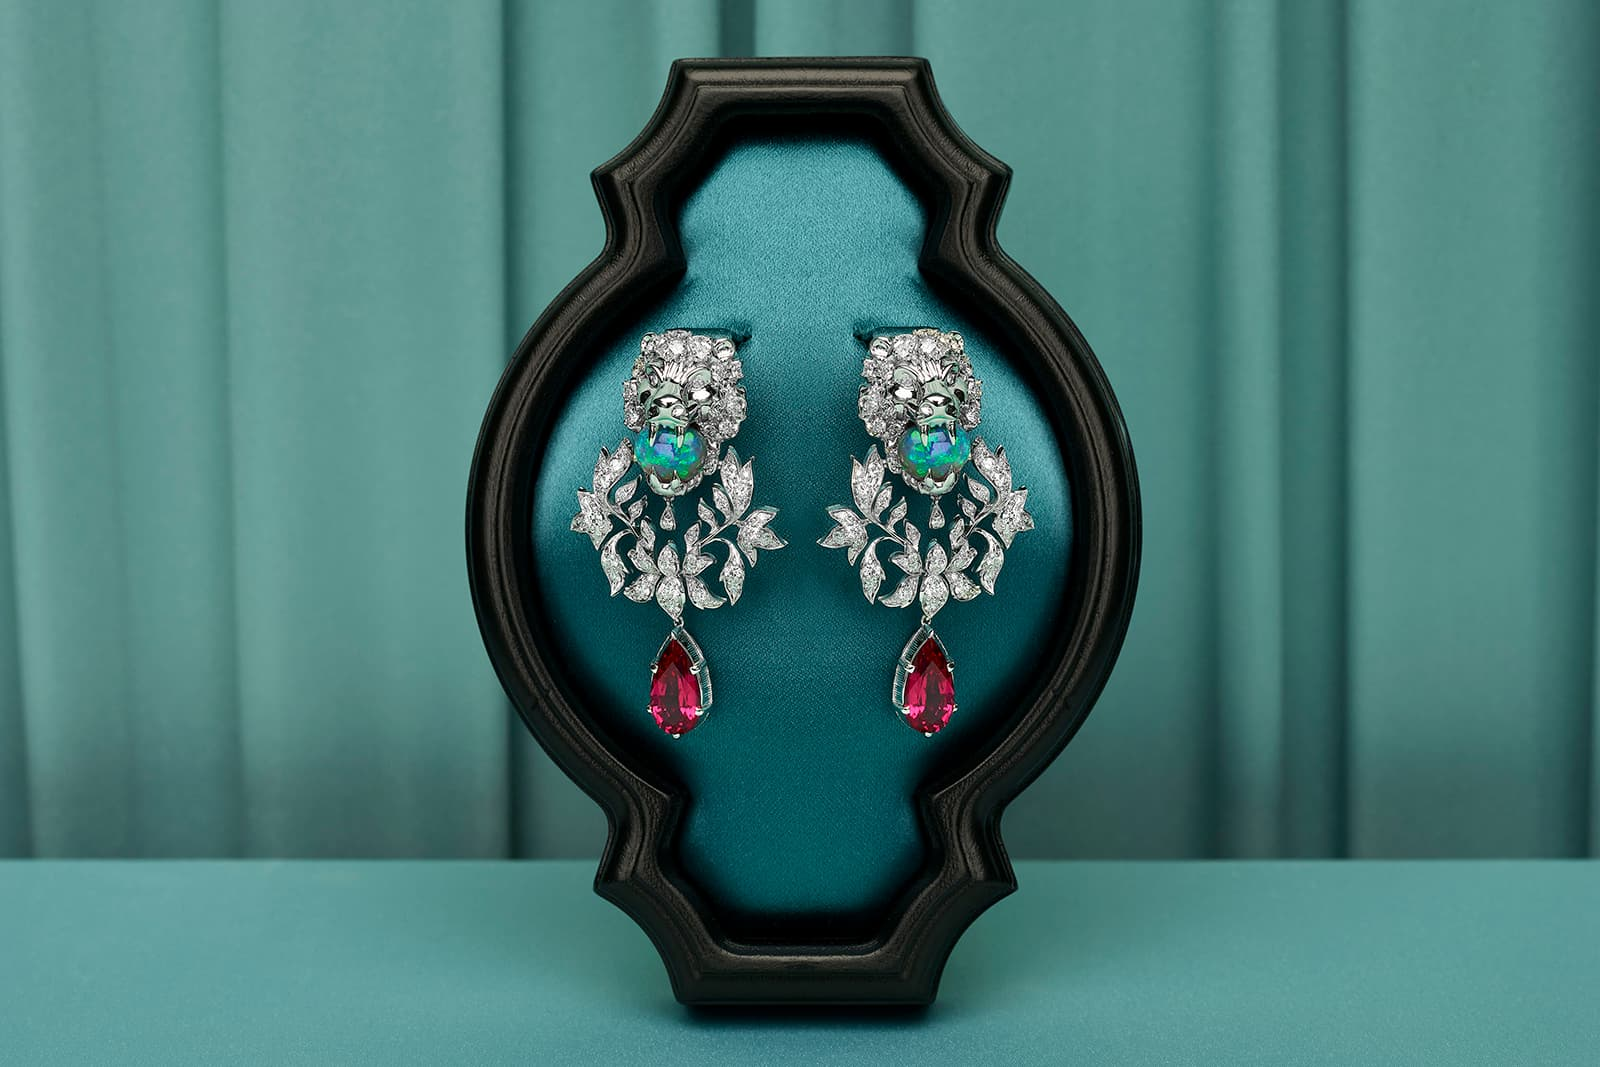 Gucci 'Hortus Deliciarum' collection 'Animal Kingdom' earrings with opals, rubellites and diamonds in white gold